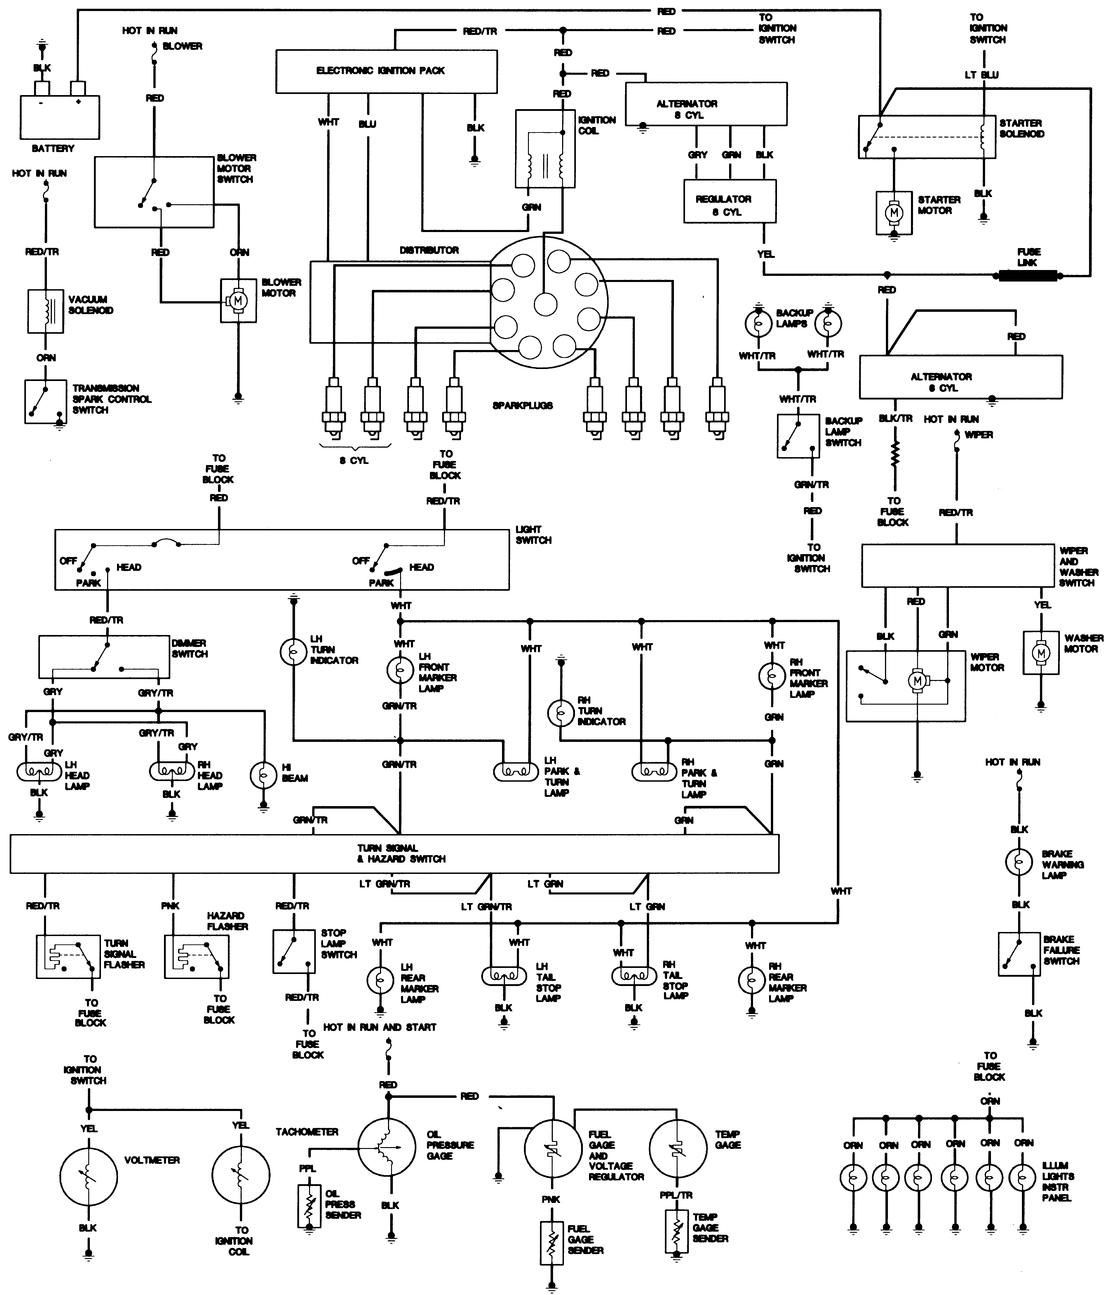 1980 jeep cj7 wiring diagram 1980 jeep cj7 wiring schematic